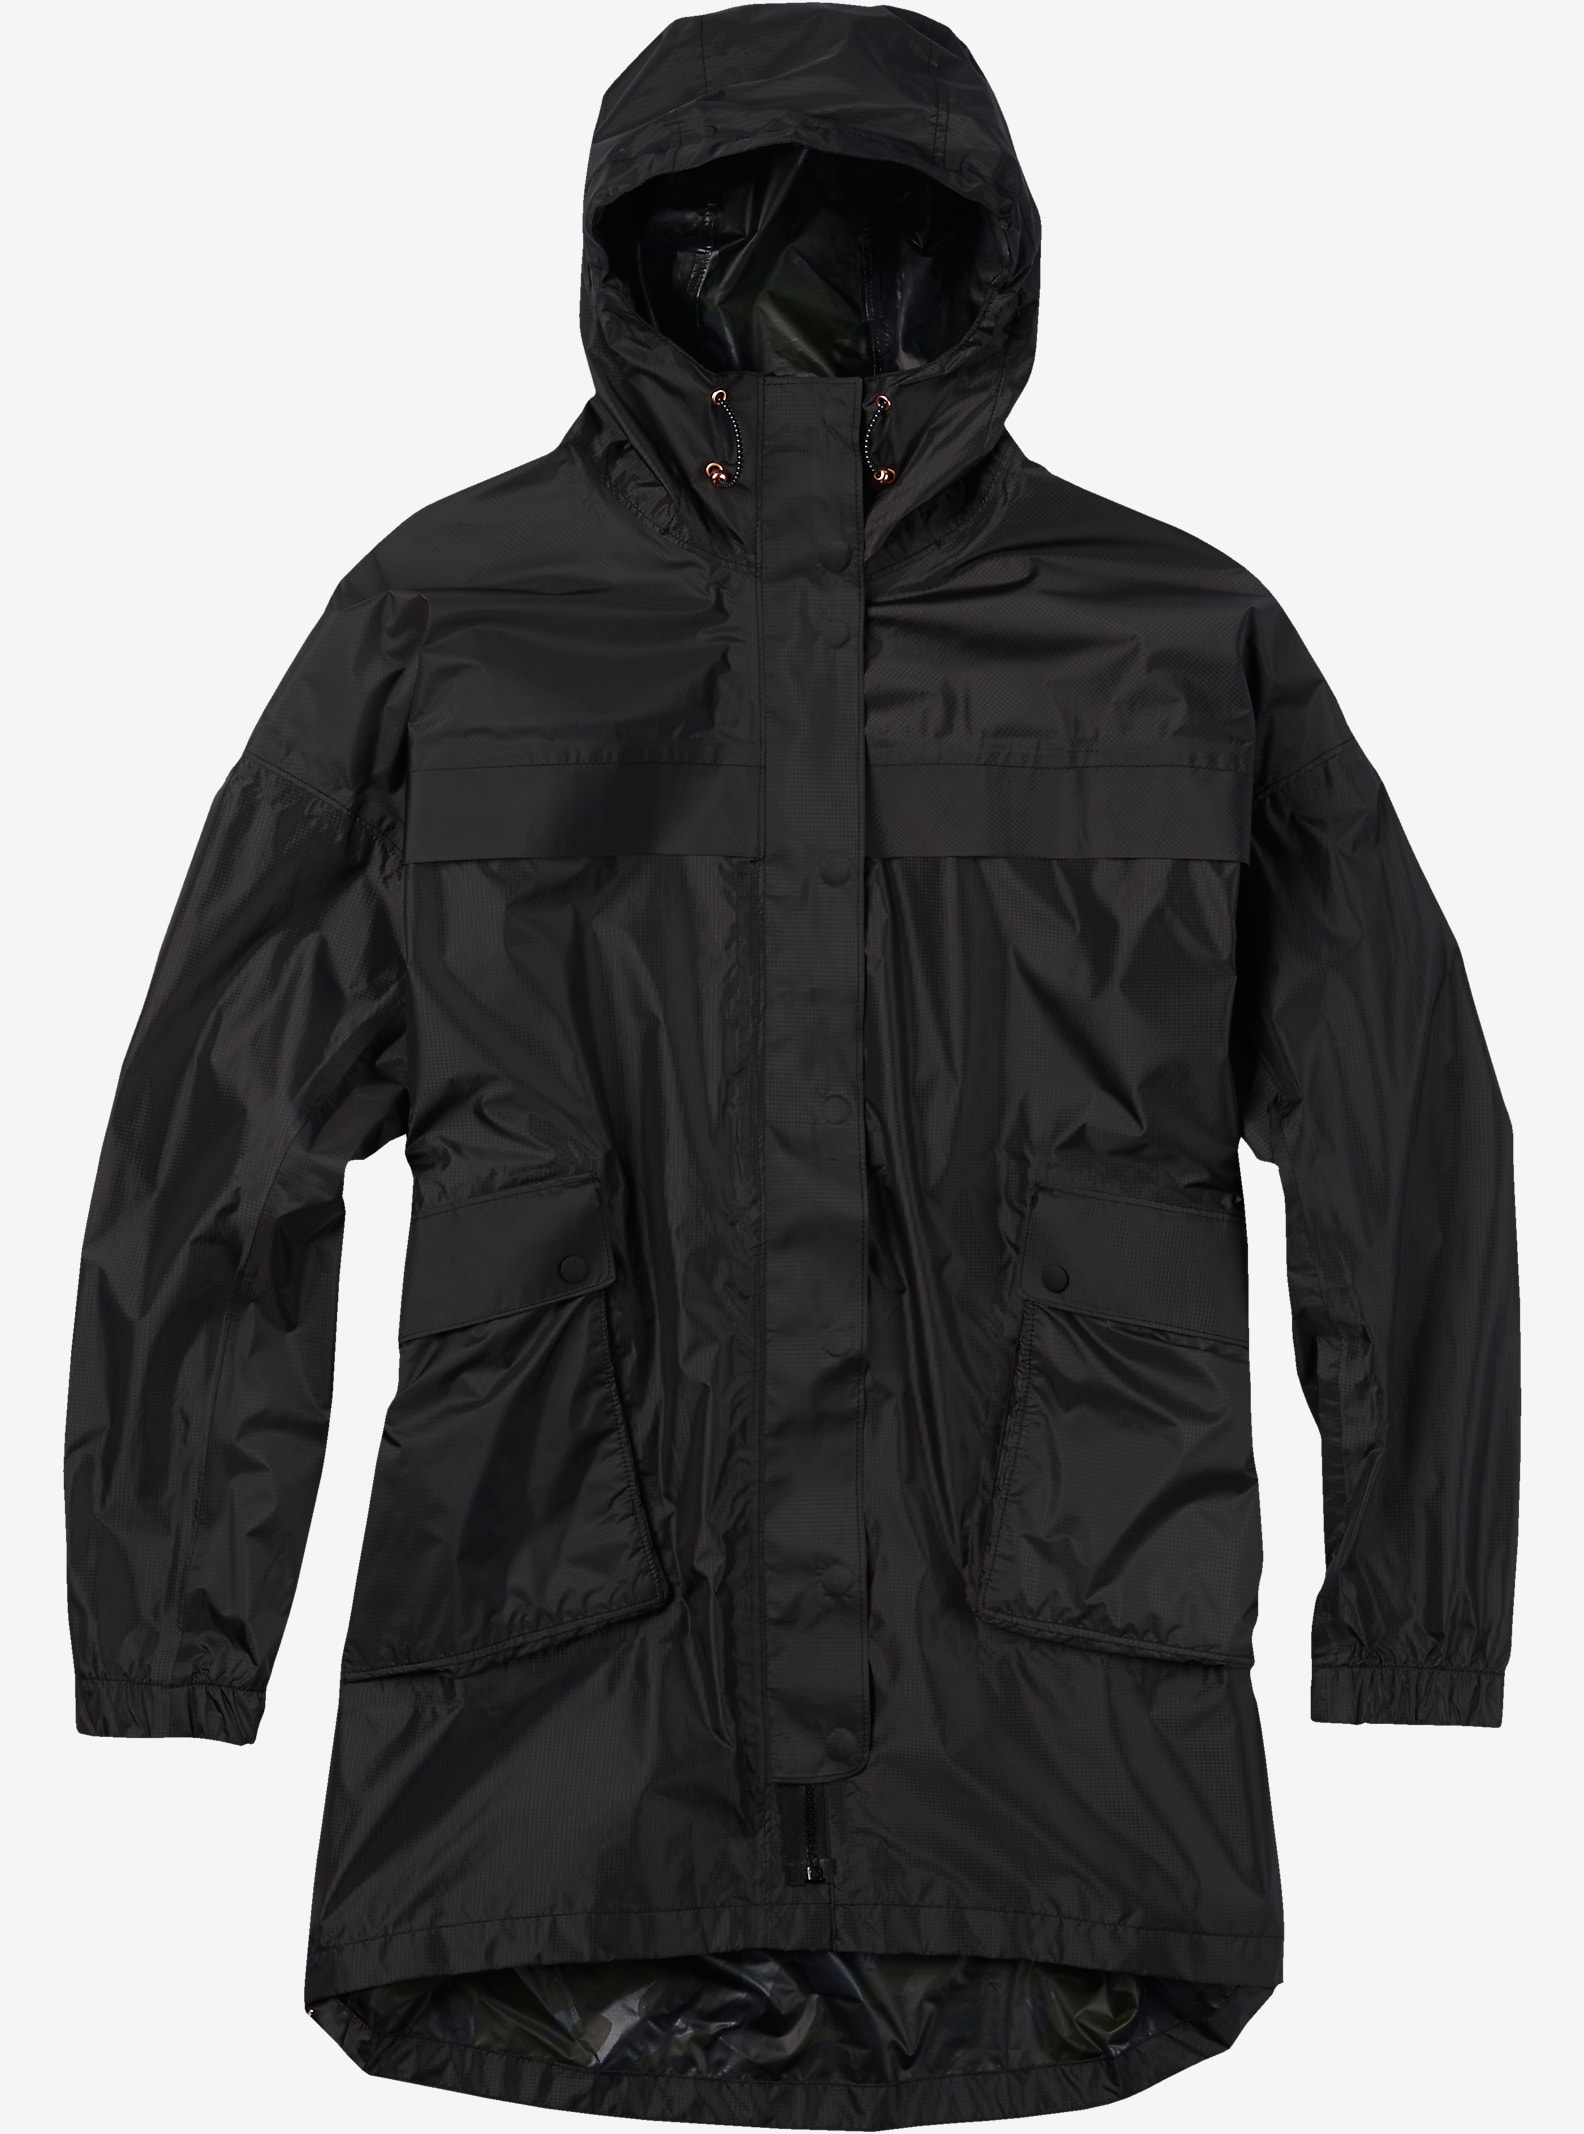 Burton Shelter Rain Jacket shown in Forged Iron